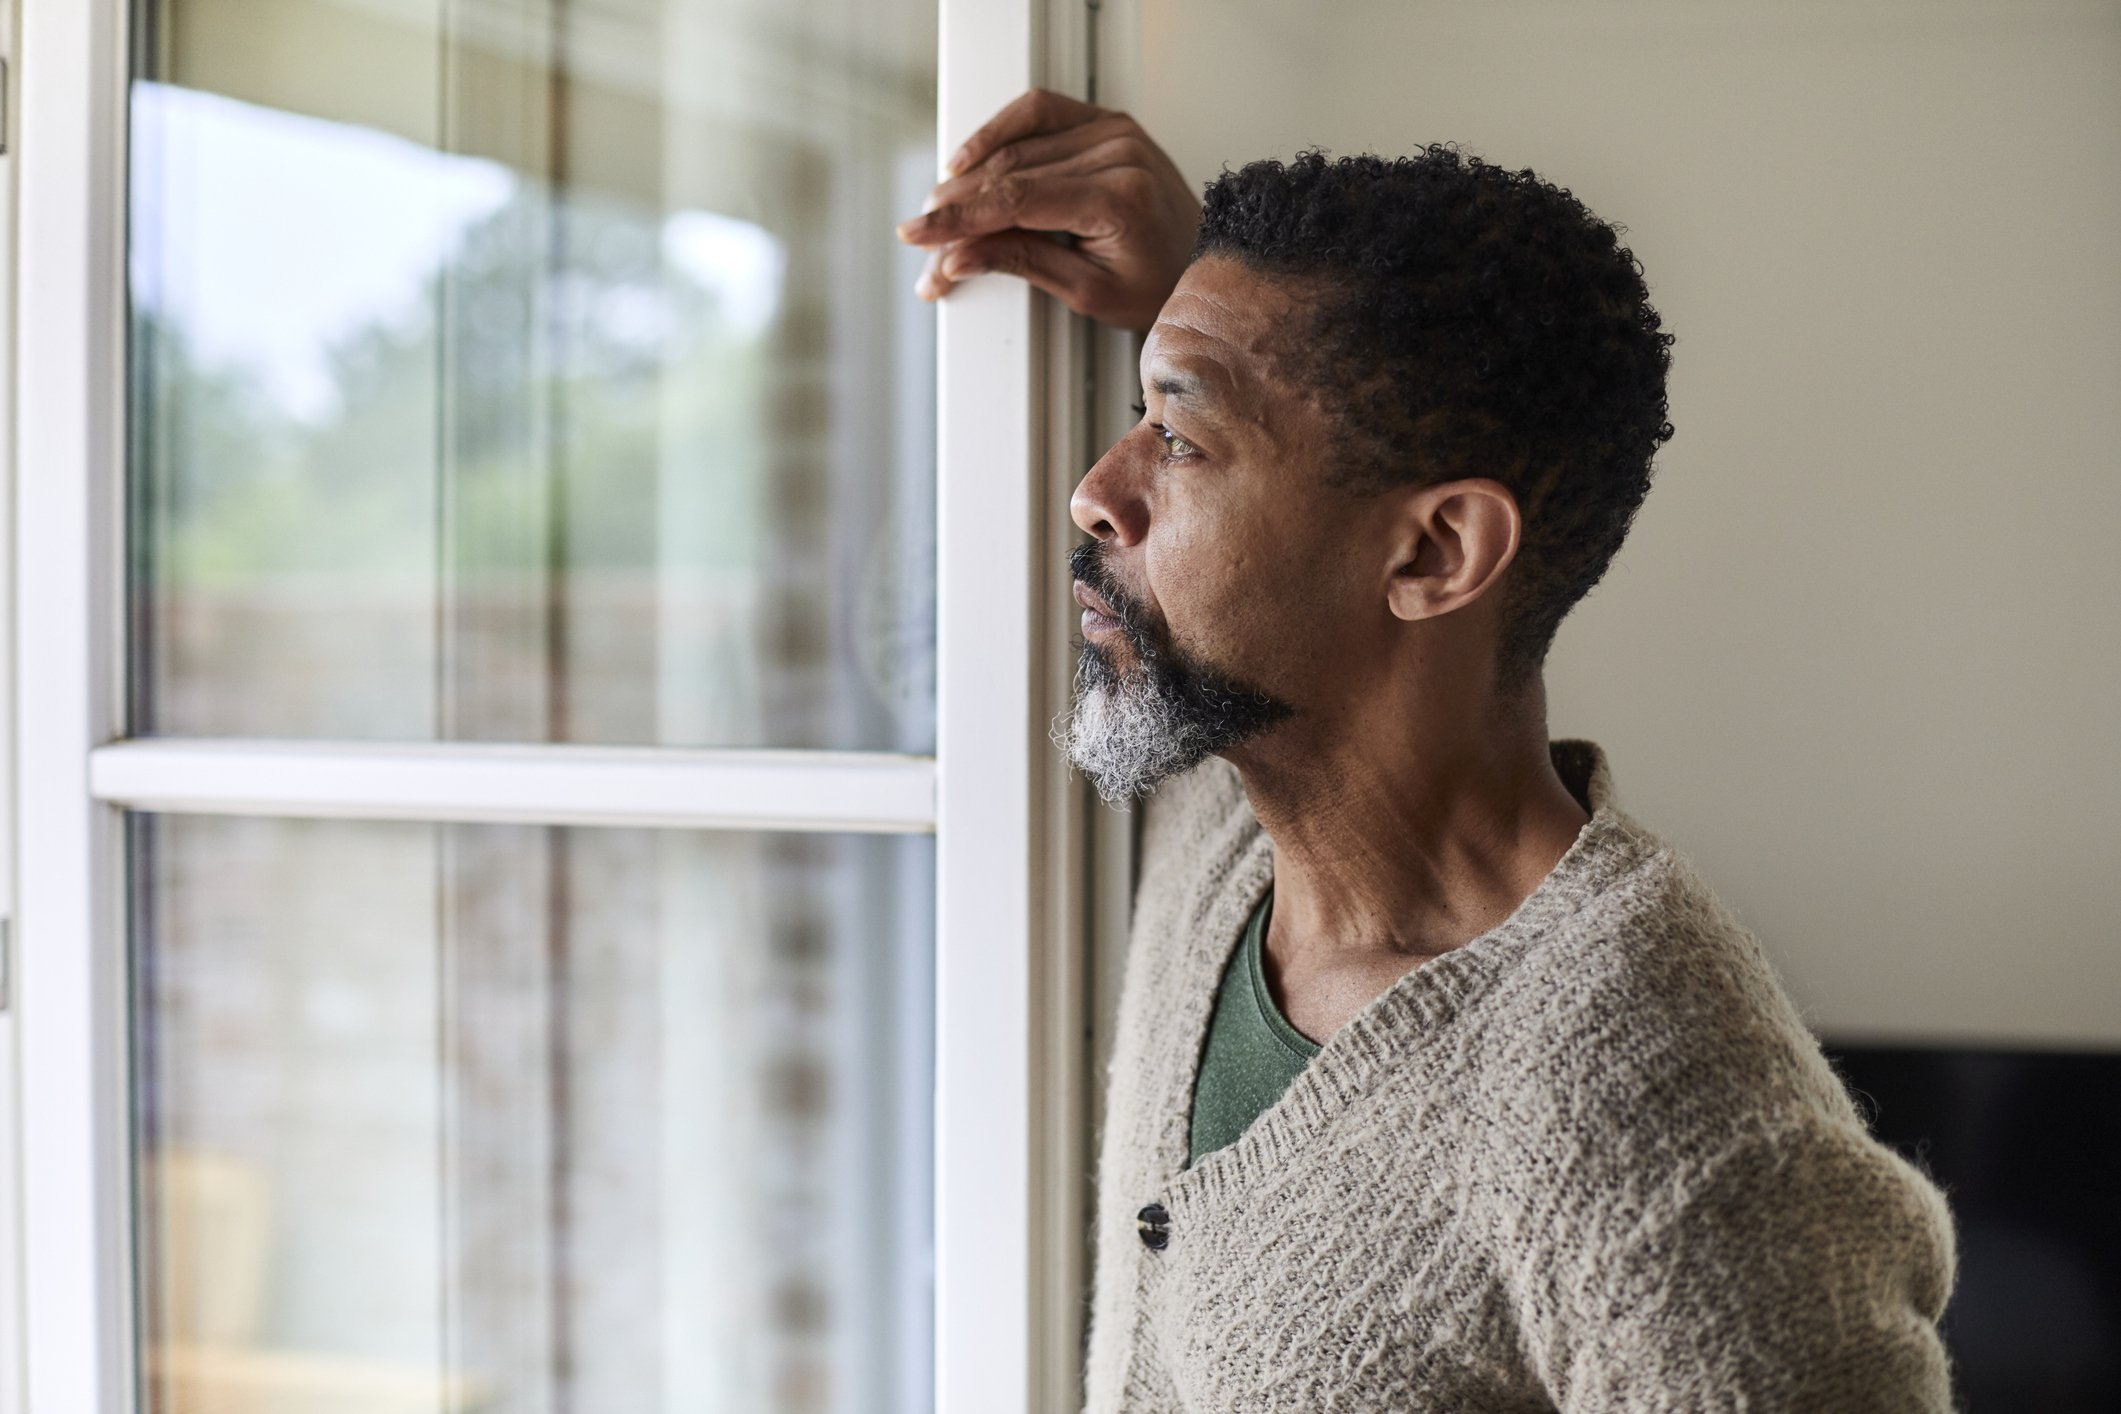 A worried man looks out the window in deep thought. | Photo: Getty Images